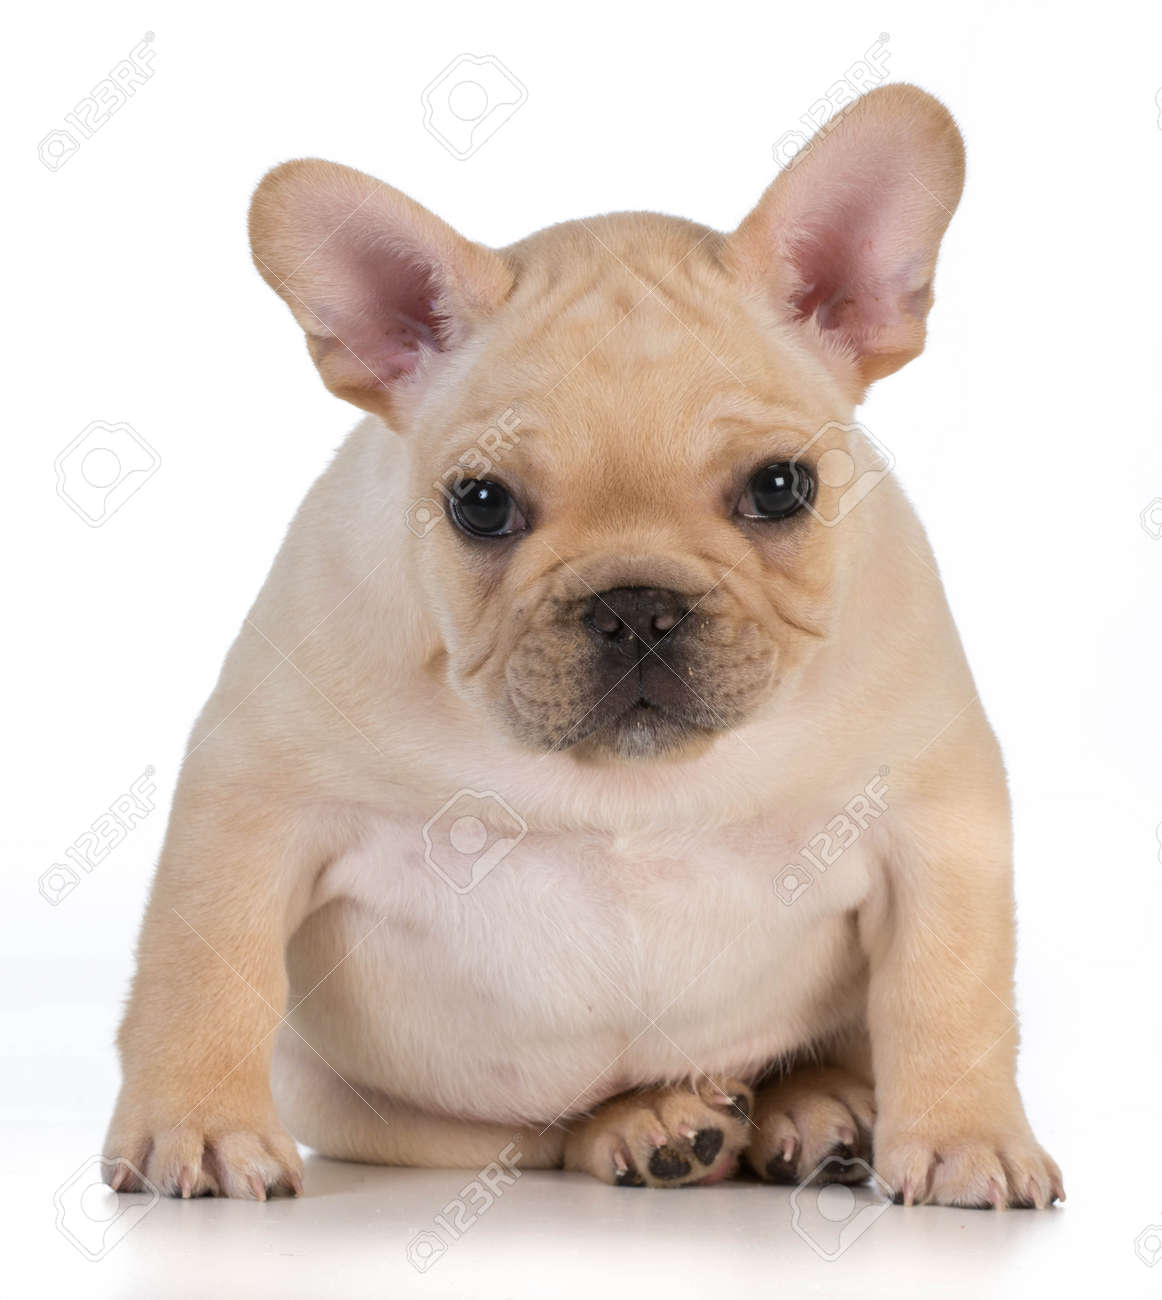 Cute Puppy French Bulldog Puppy Sitting Looking At Viewer